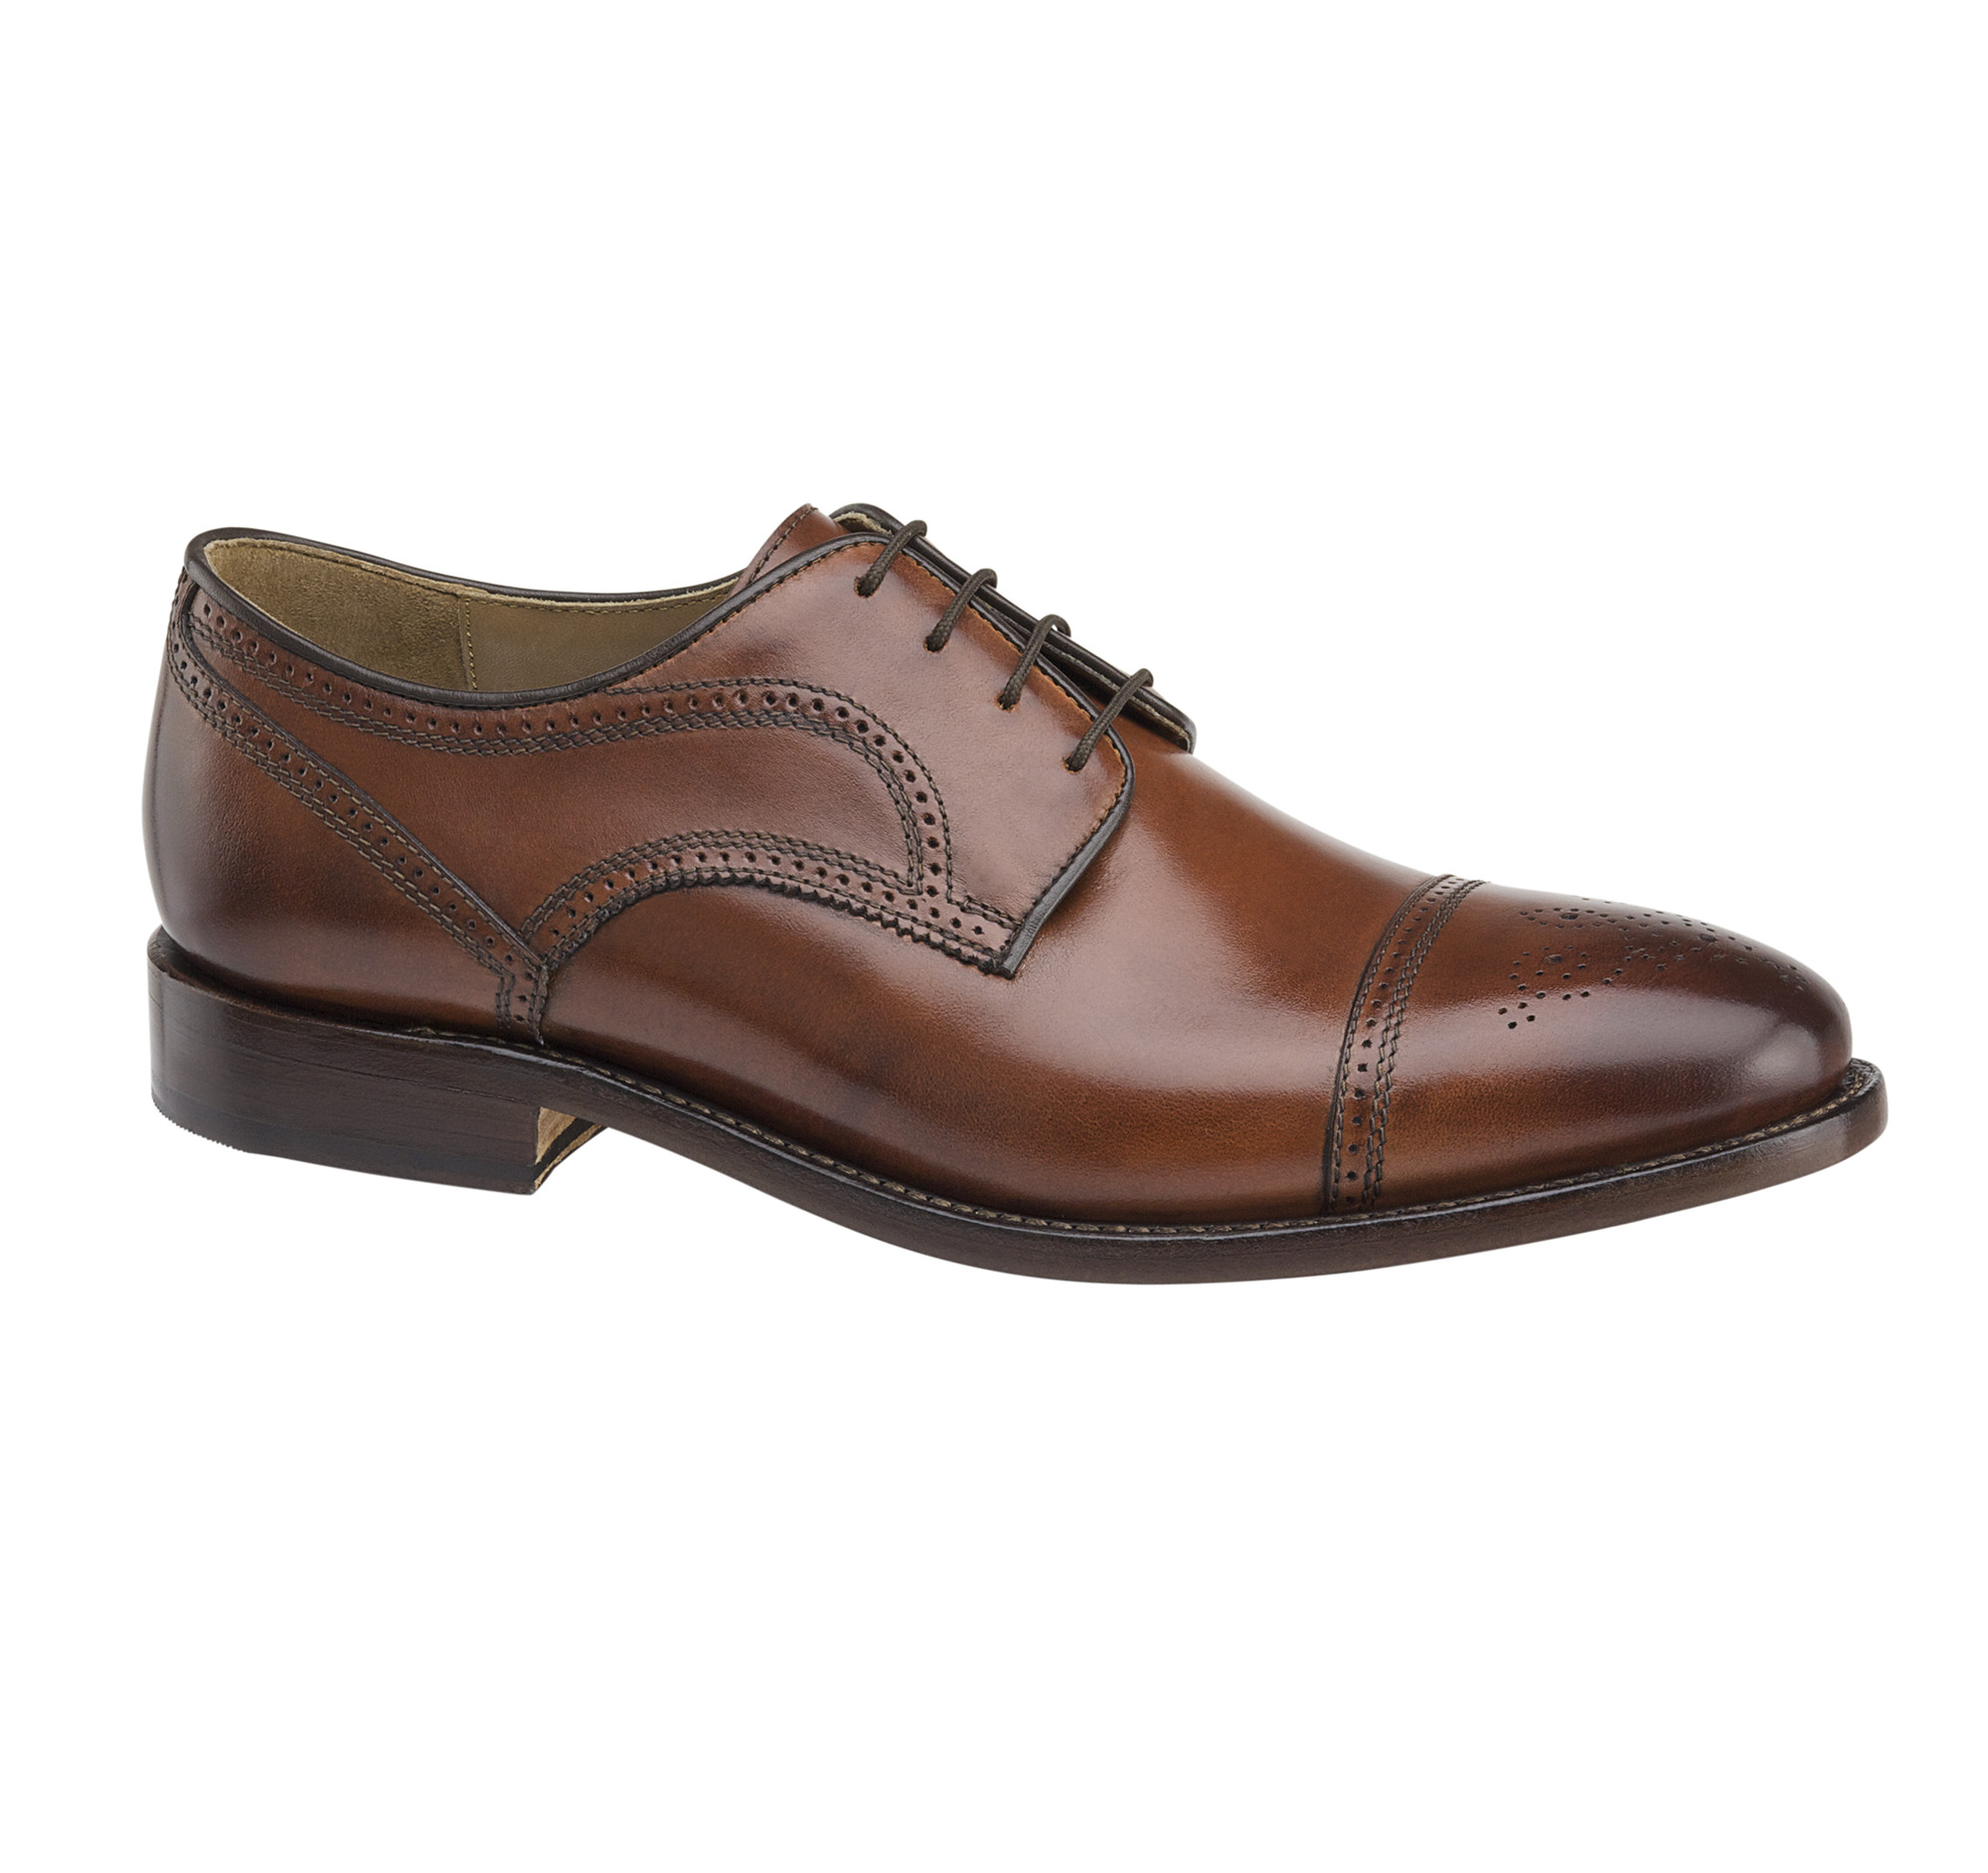 Johnston & Murphy Men's Collins Cap Toe Oxford